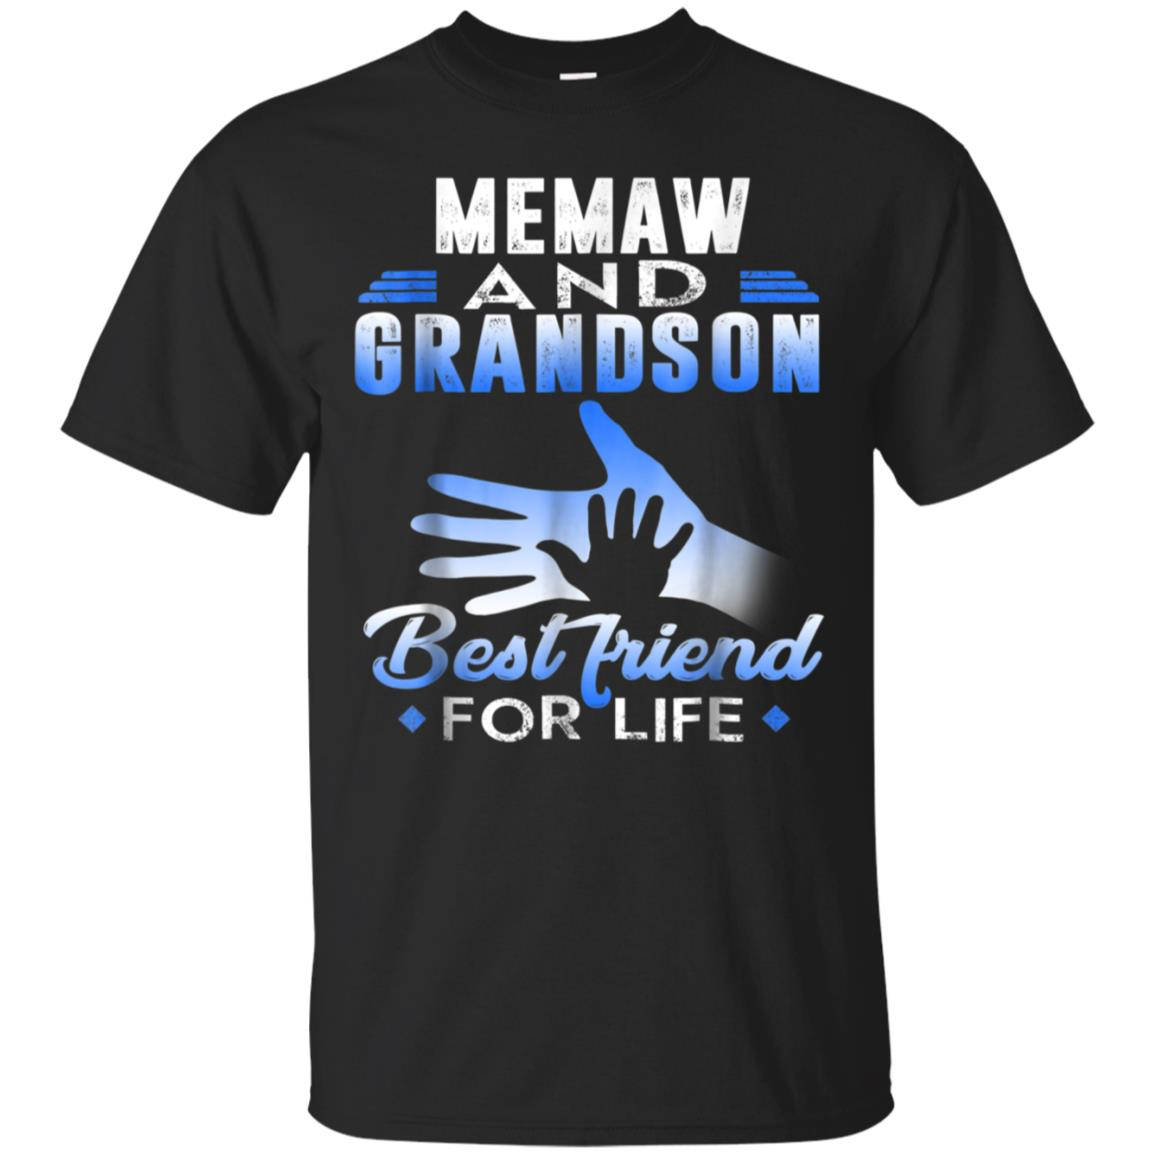 Funny Memaw and Grandson Best friends for life T-Shirt 99promocode